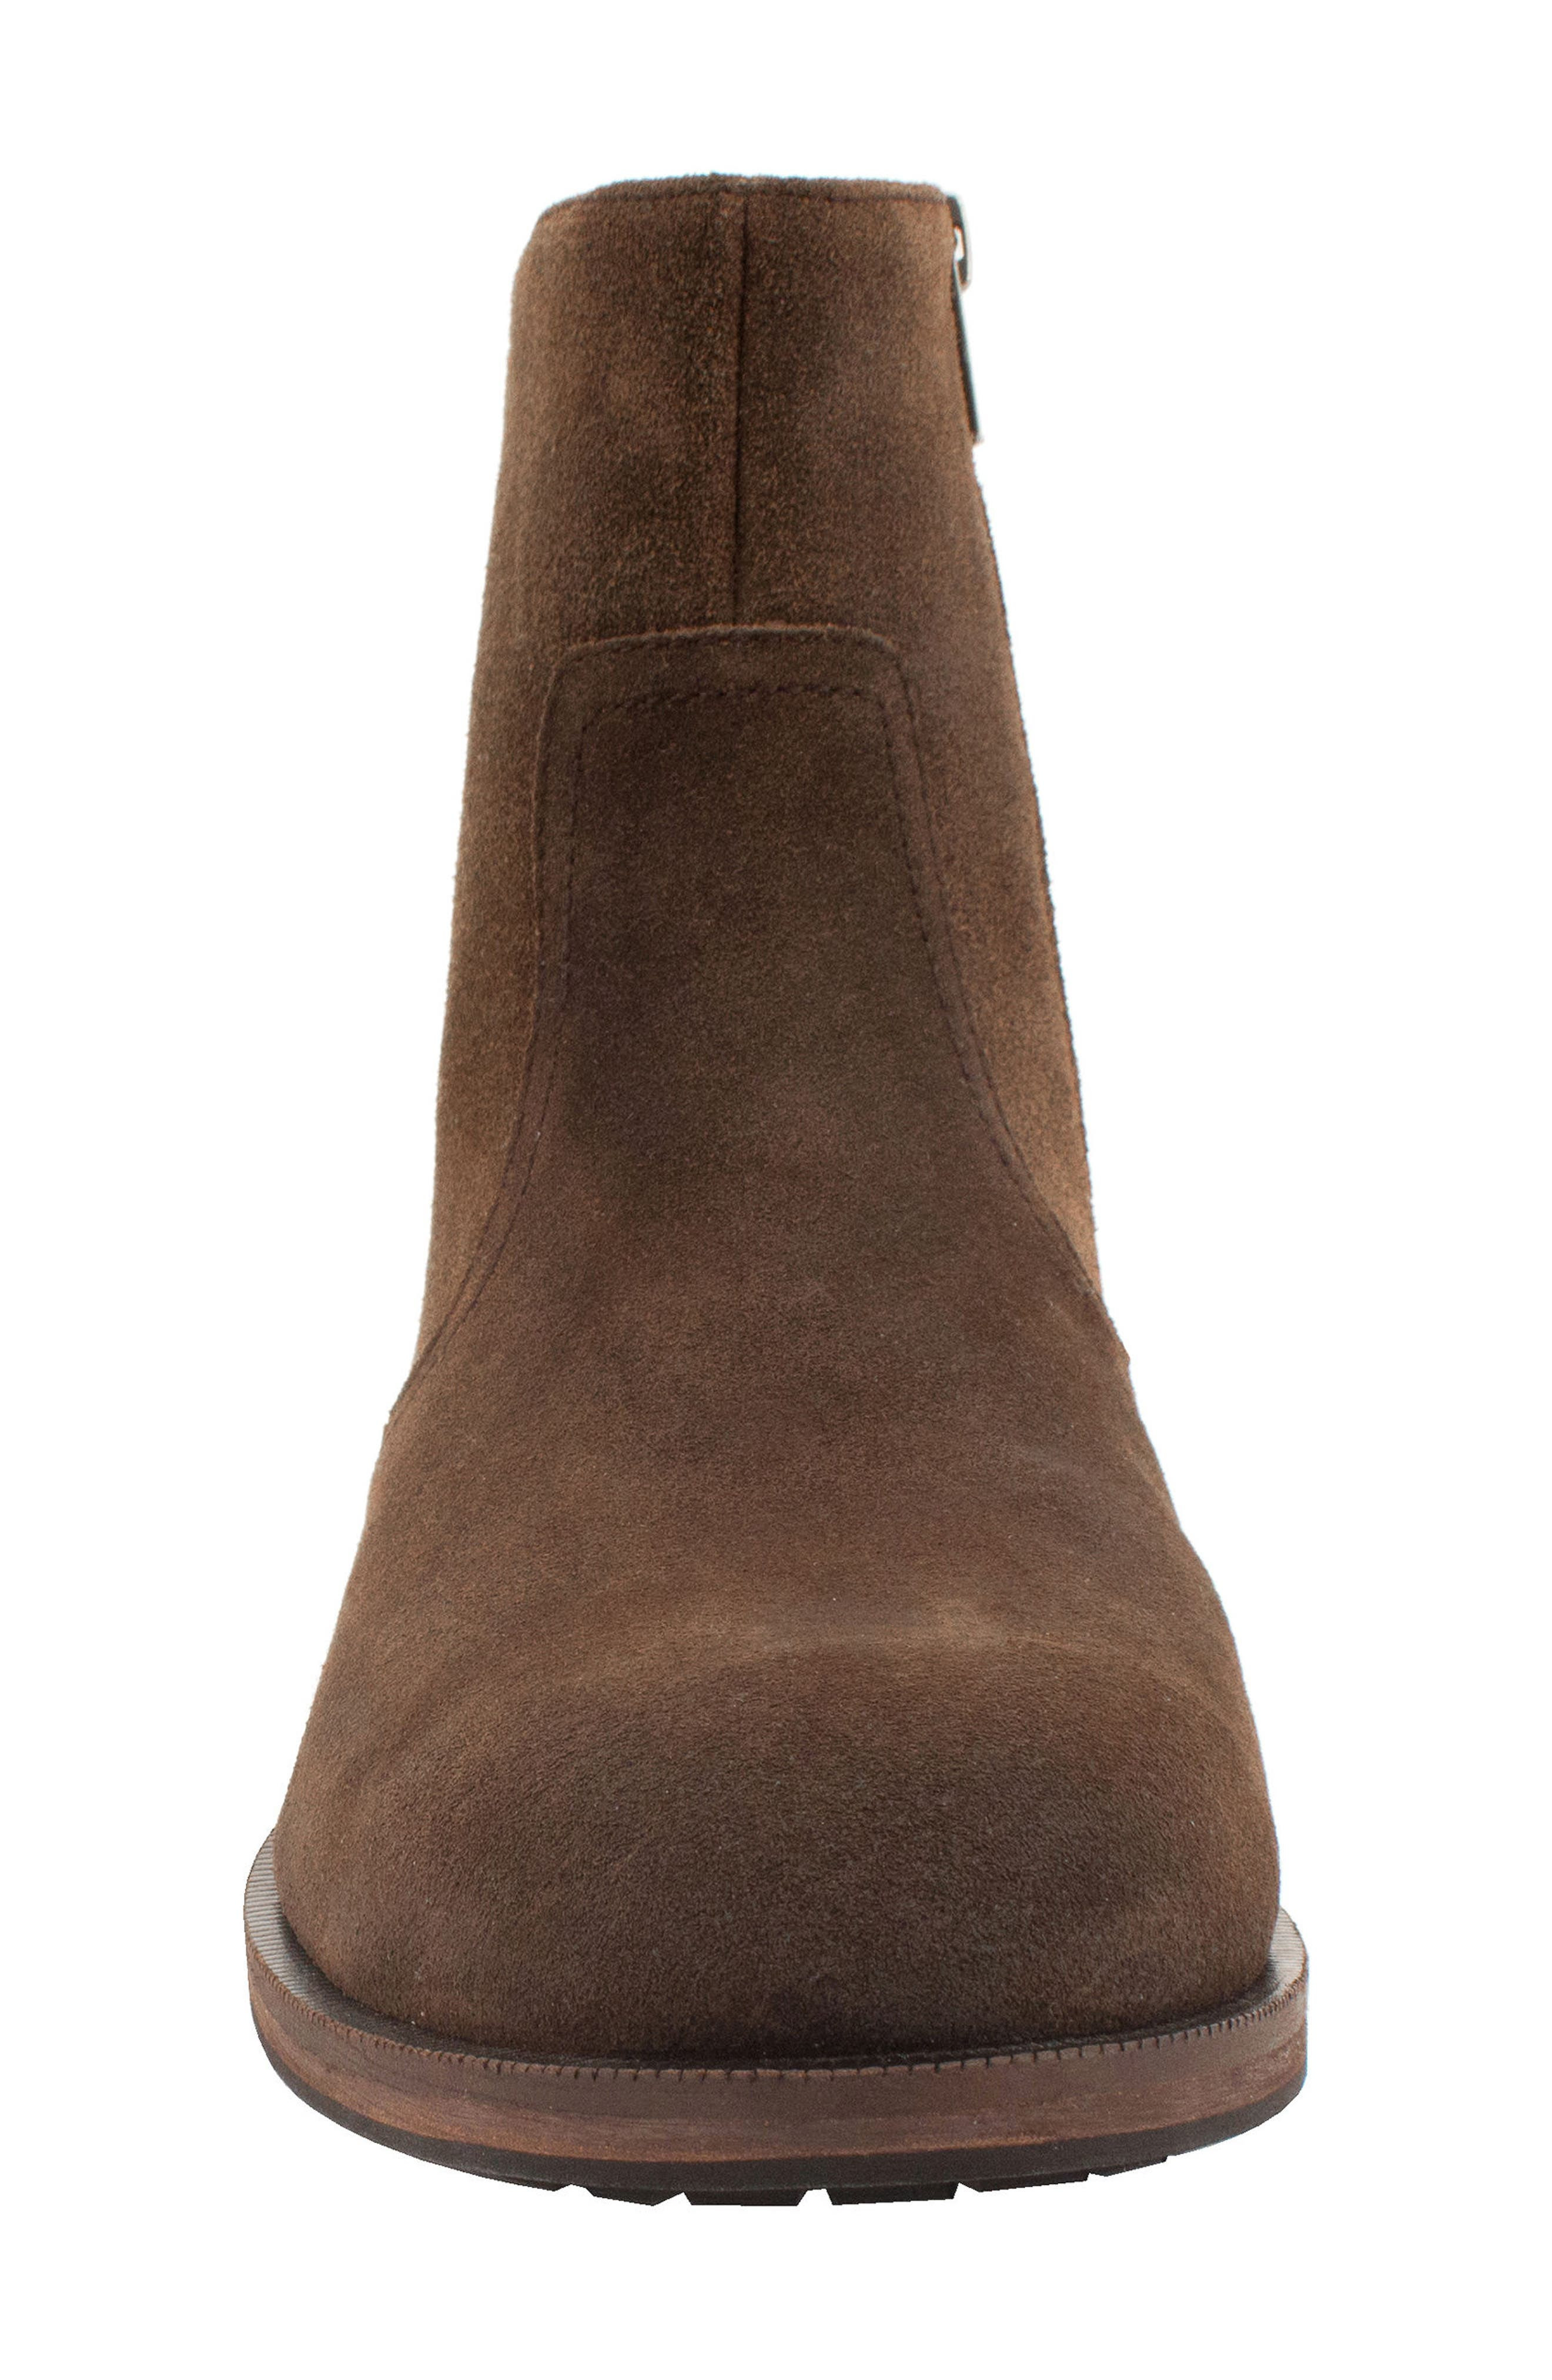 Fayette Plain Toe Zip Boot,                             Alternate thumbnail 4, color,                             CHOCOLATE SUEDE